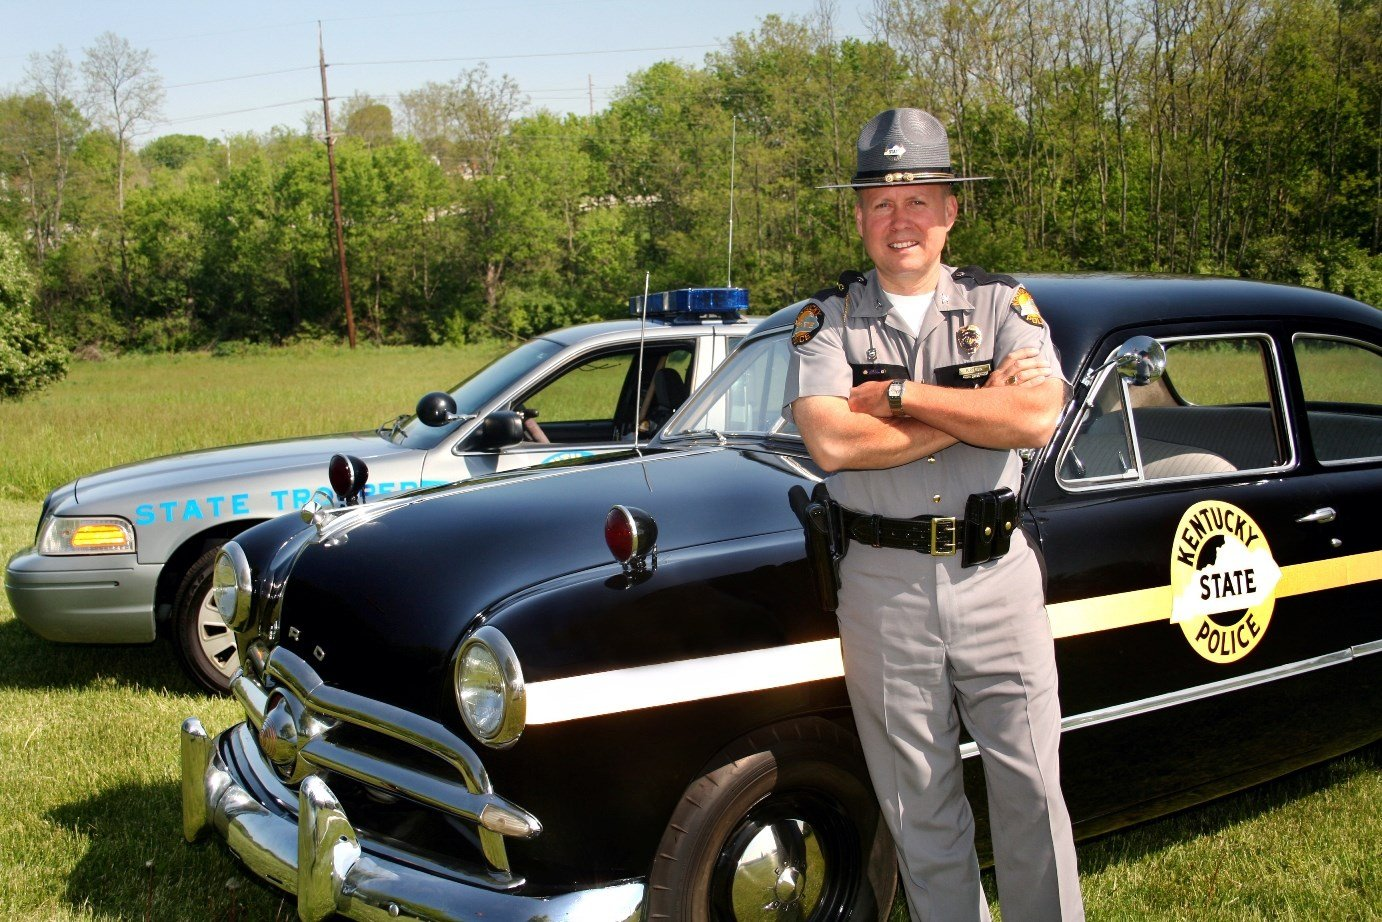 In this photo from Kentucky State Police, KSP Commissioner Rodney Brewer leans against a 1949 Patrol Cruiser.